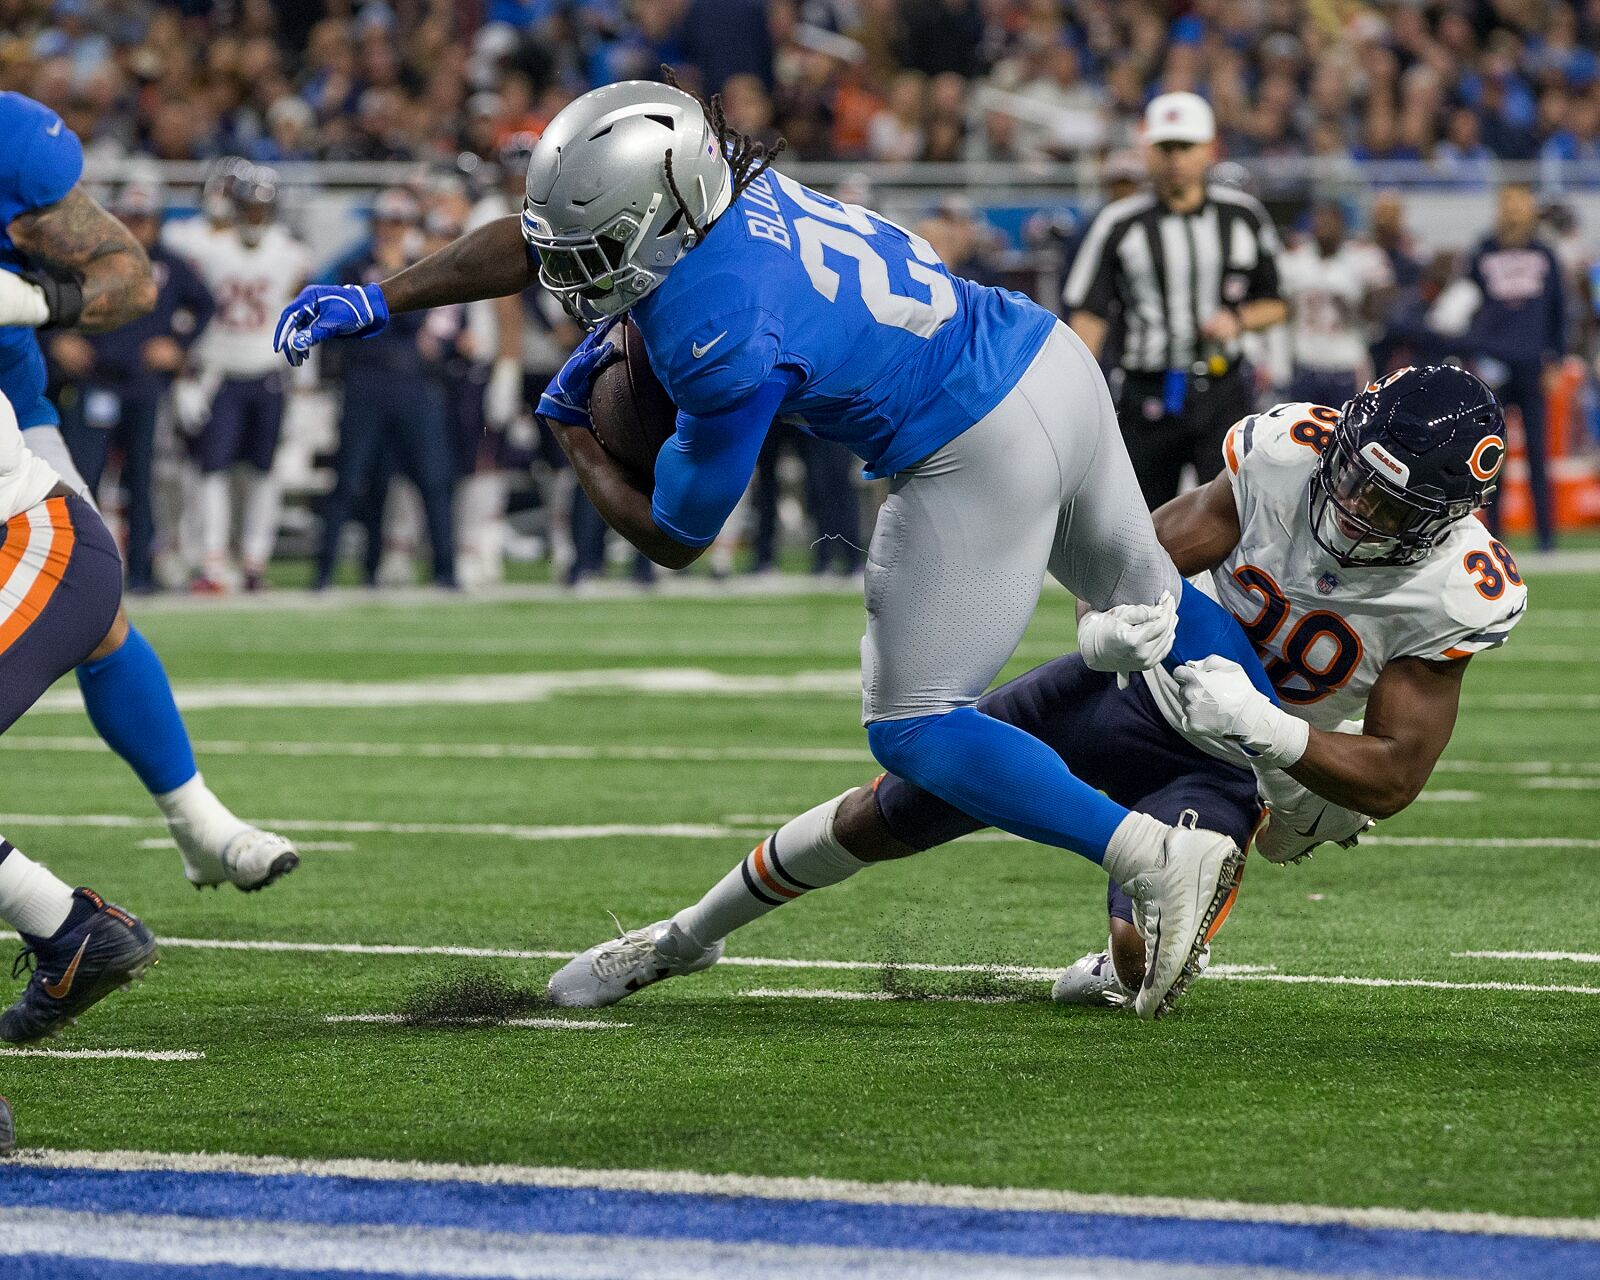 b7548c4f552 Detroit Lions: Is it one and done for LeGarrette Blount?